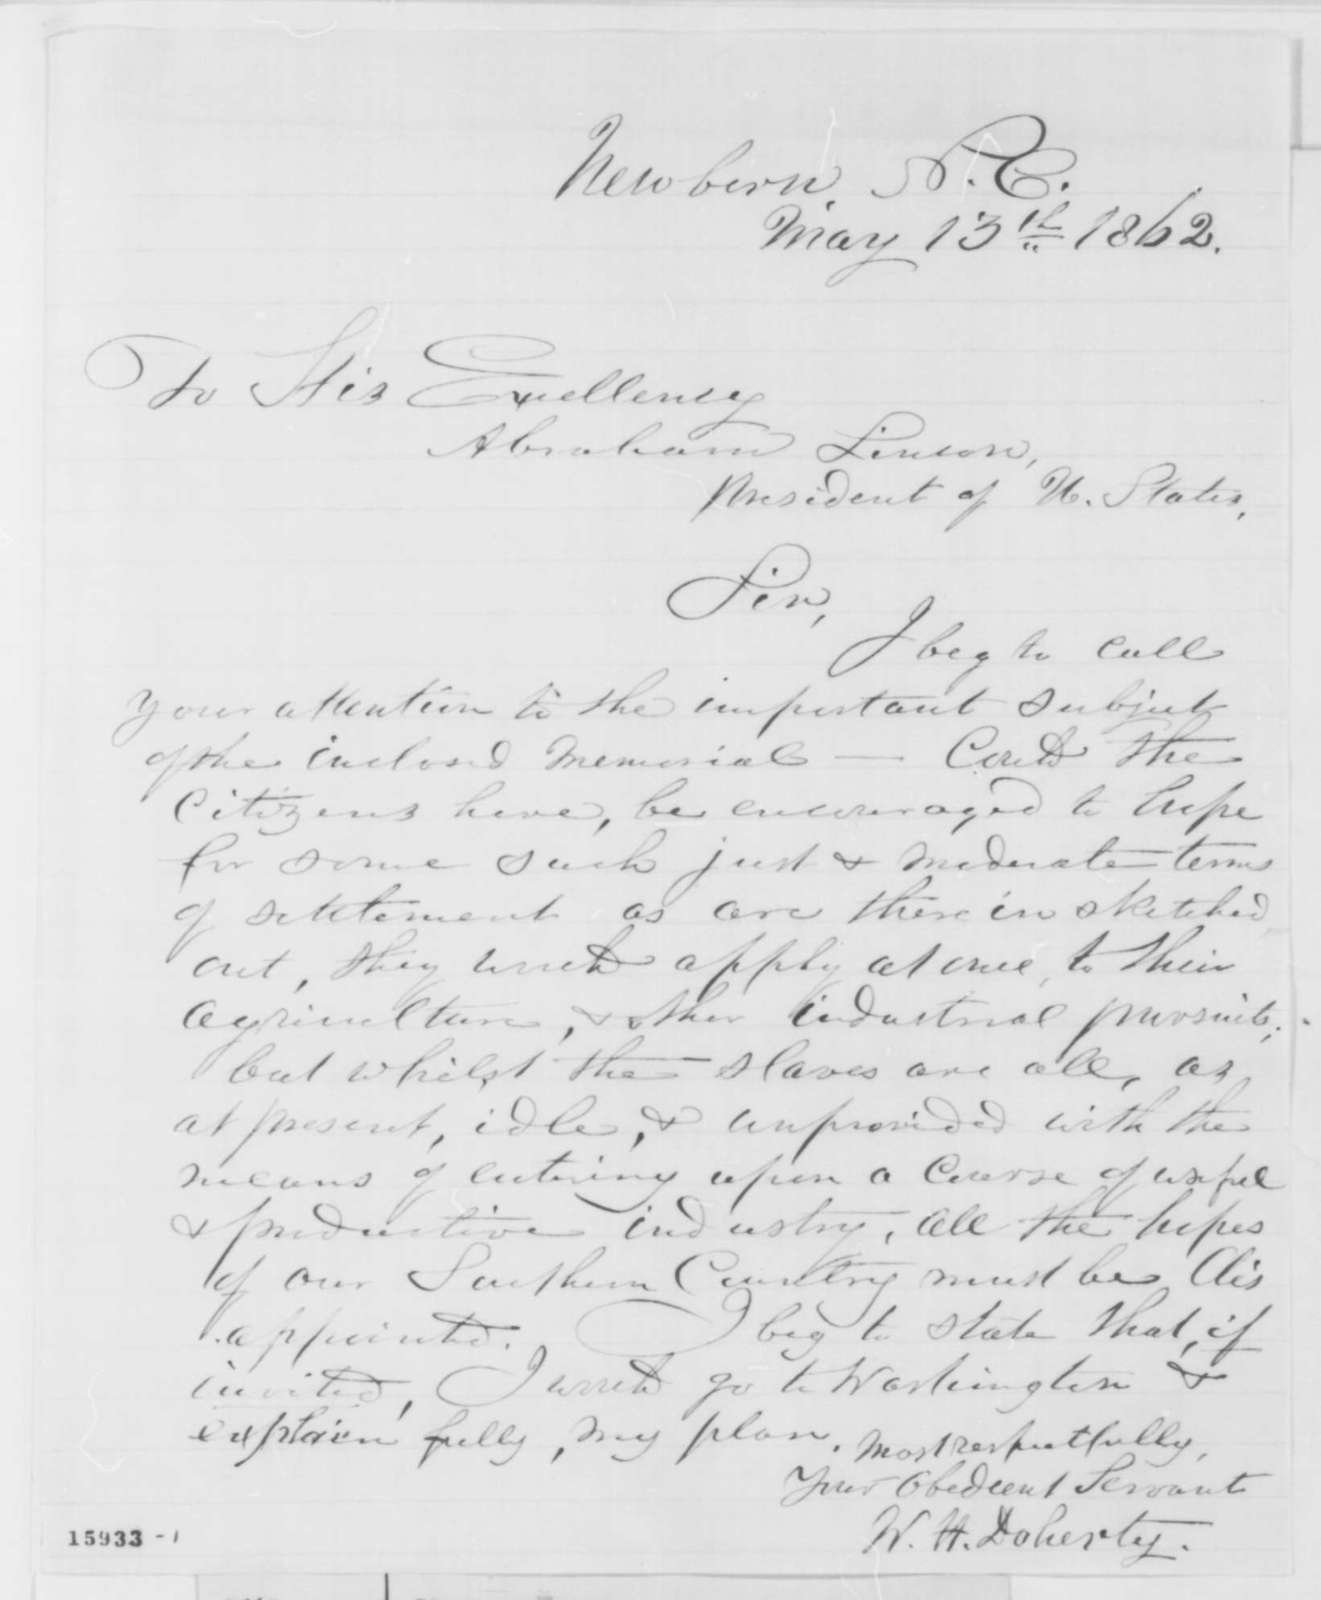 W. H. Doherty to Abraham Lincoln, Tuesday, May 13, 1862  (Plan for reconstruction)